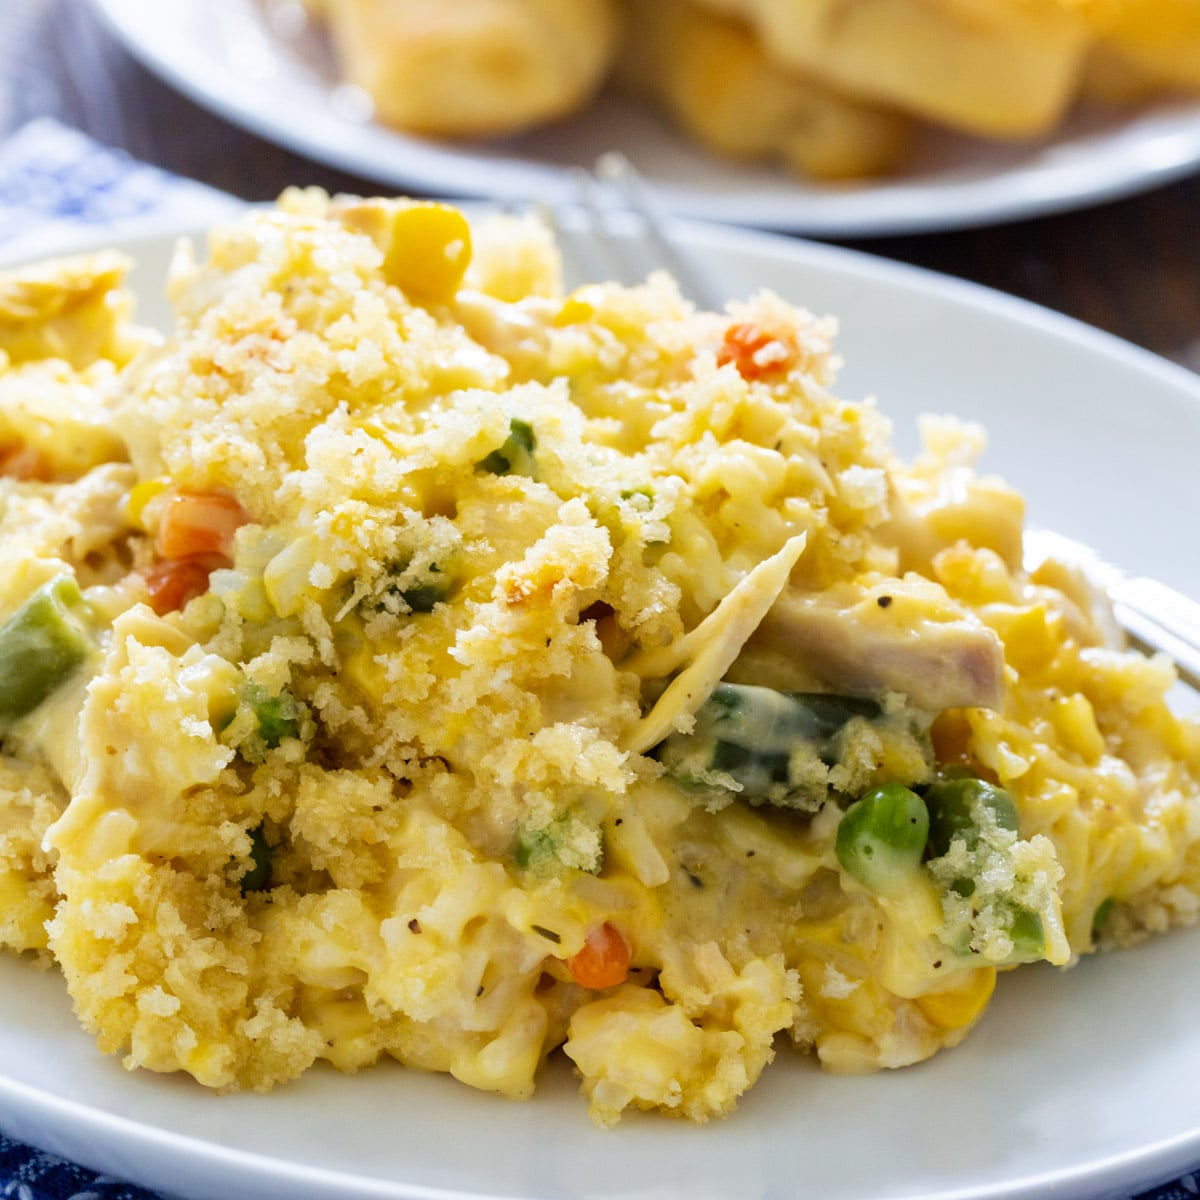 Creamy and Chicken Rice Casserole dished up on a plate.